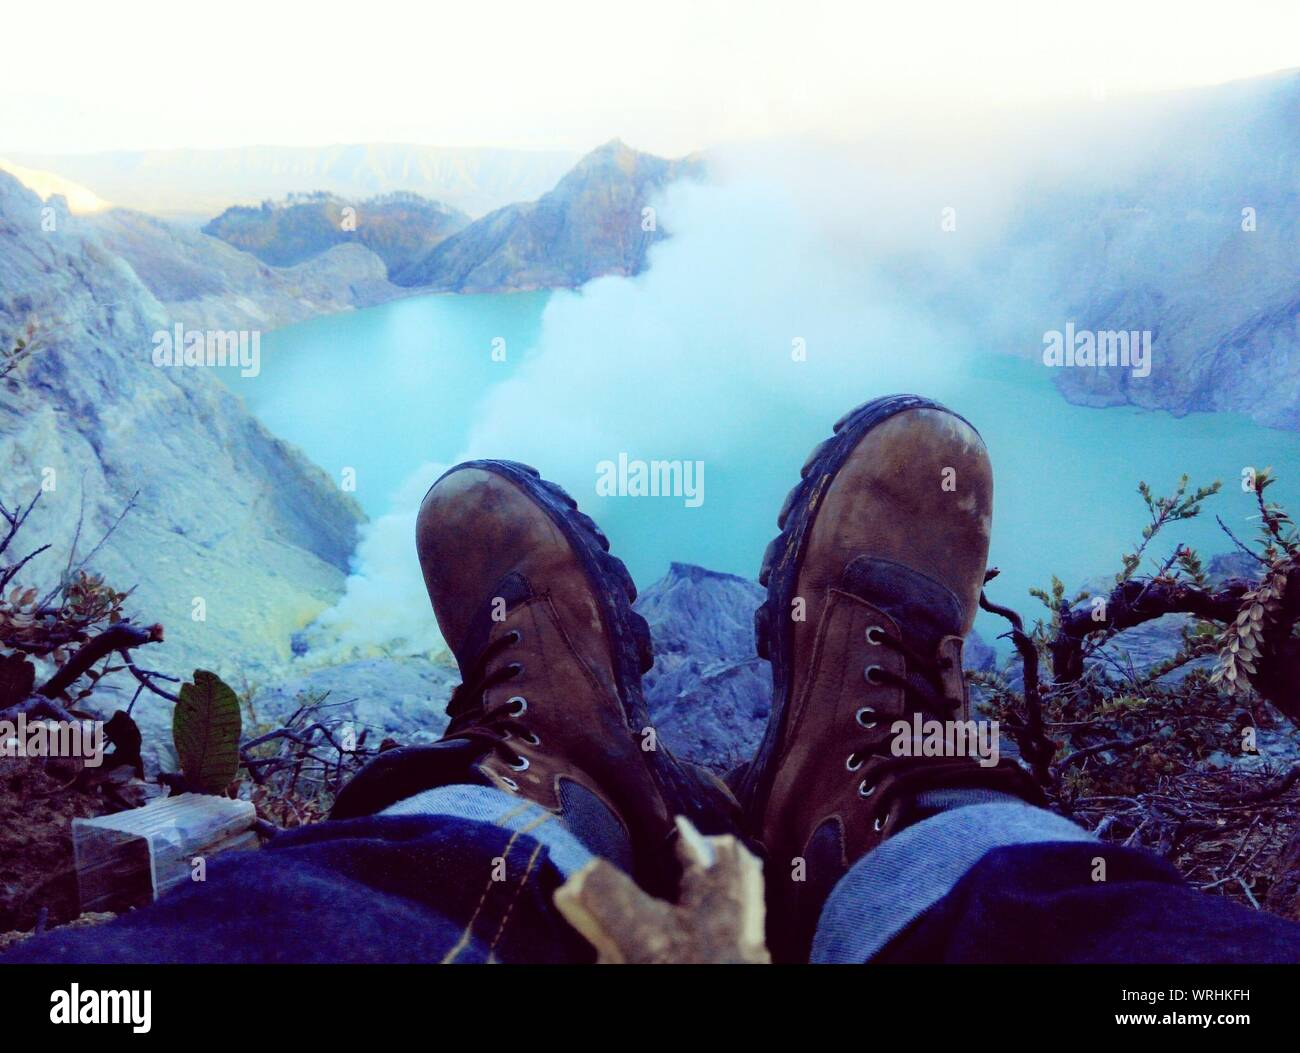 Avid Nature Lover Watching Hot Spring Valley In Wilds Stock Photo